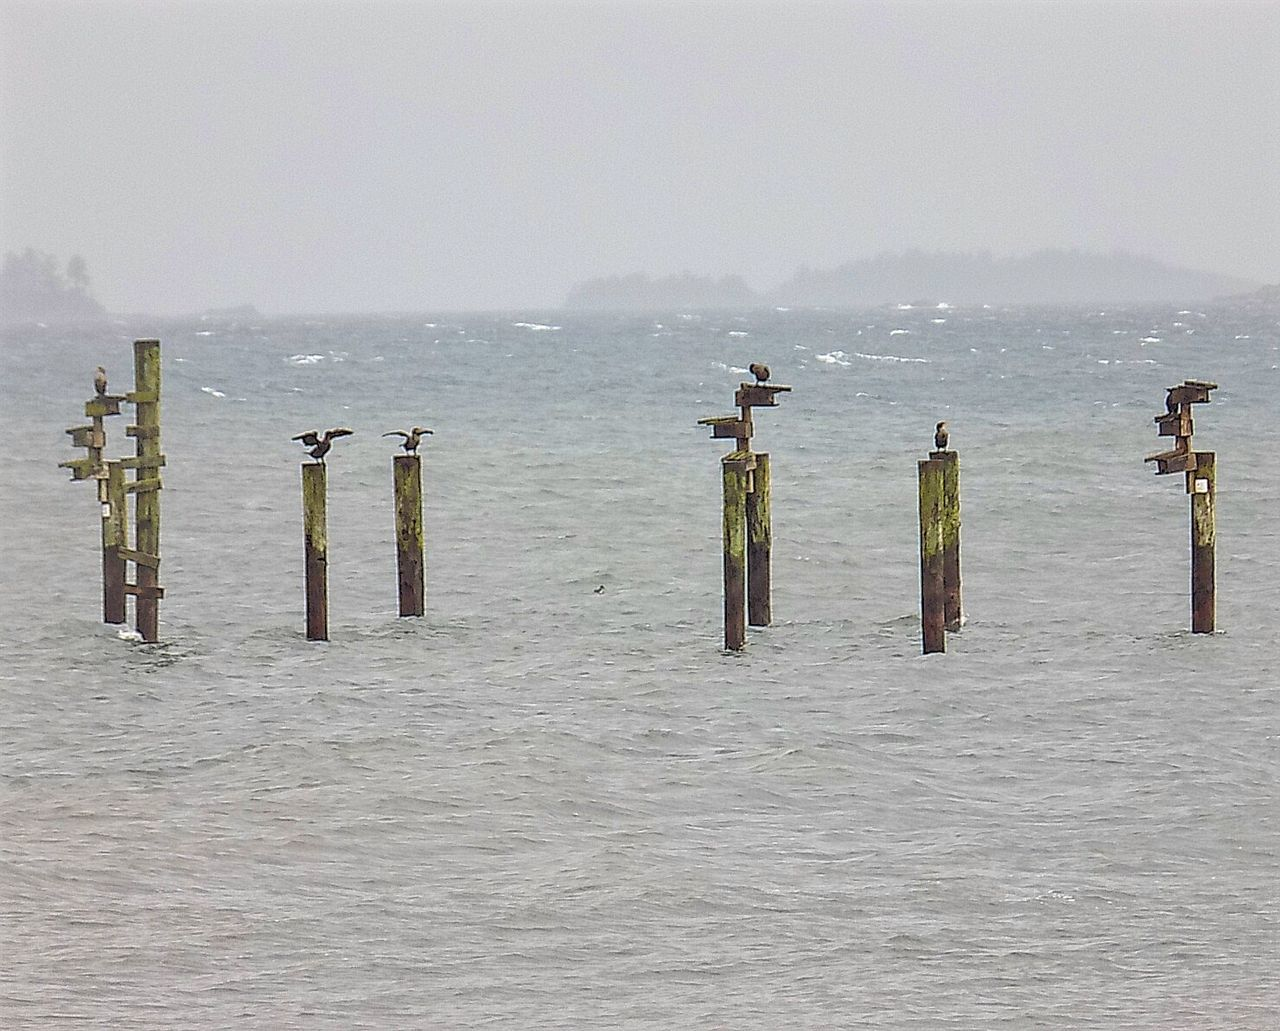 Riding out the storm Bcstorm Water Wooden Post Sea Waterfront Scenics Pole Nature Beauty In Nature Group Of Objects Ocean No People Seascape Stormy Weather Birds On Posts Birds Of EyeEm  Birds Birds Of EyeEm  Distant Water Wooden Post Tranquility Sea Vancouver Island Canada Pacific Northwest